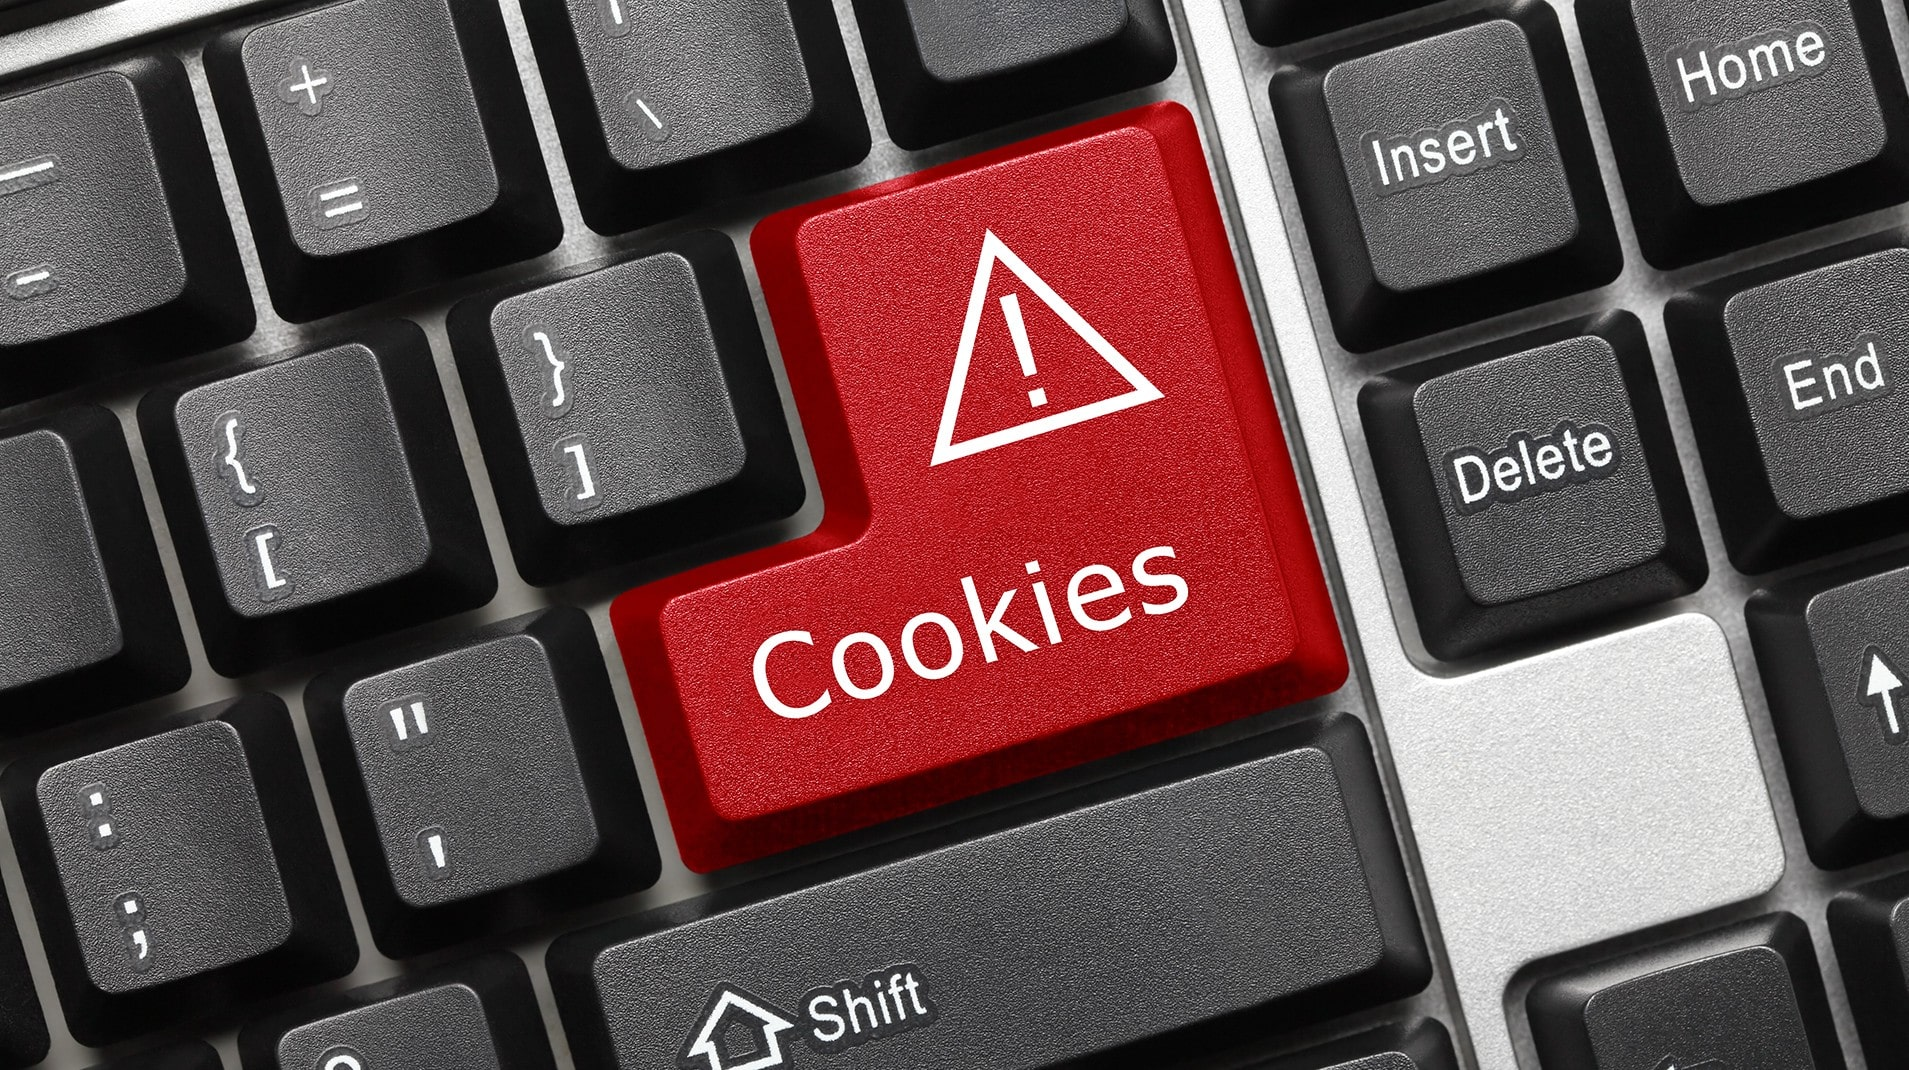 Wordpress sätter varningsflagg på Googles cookieersättare